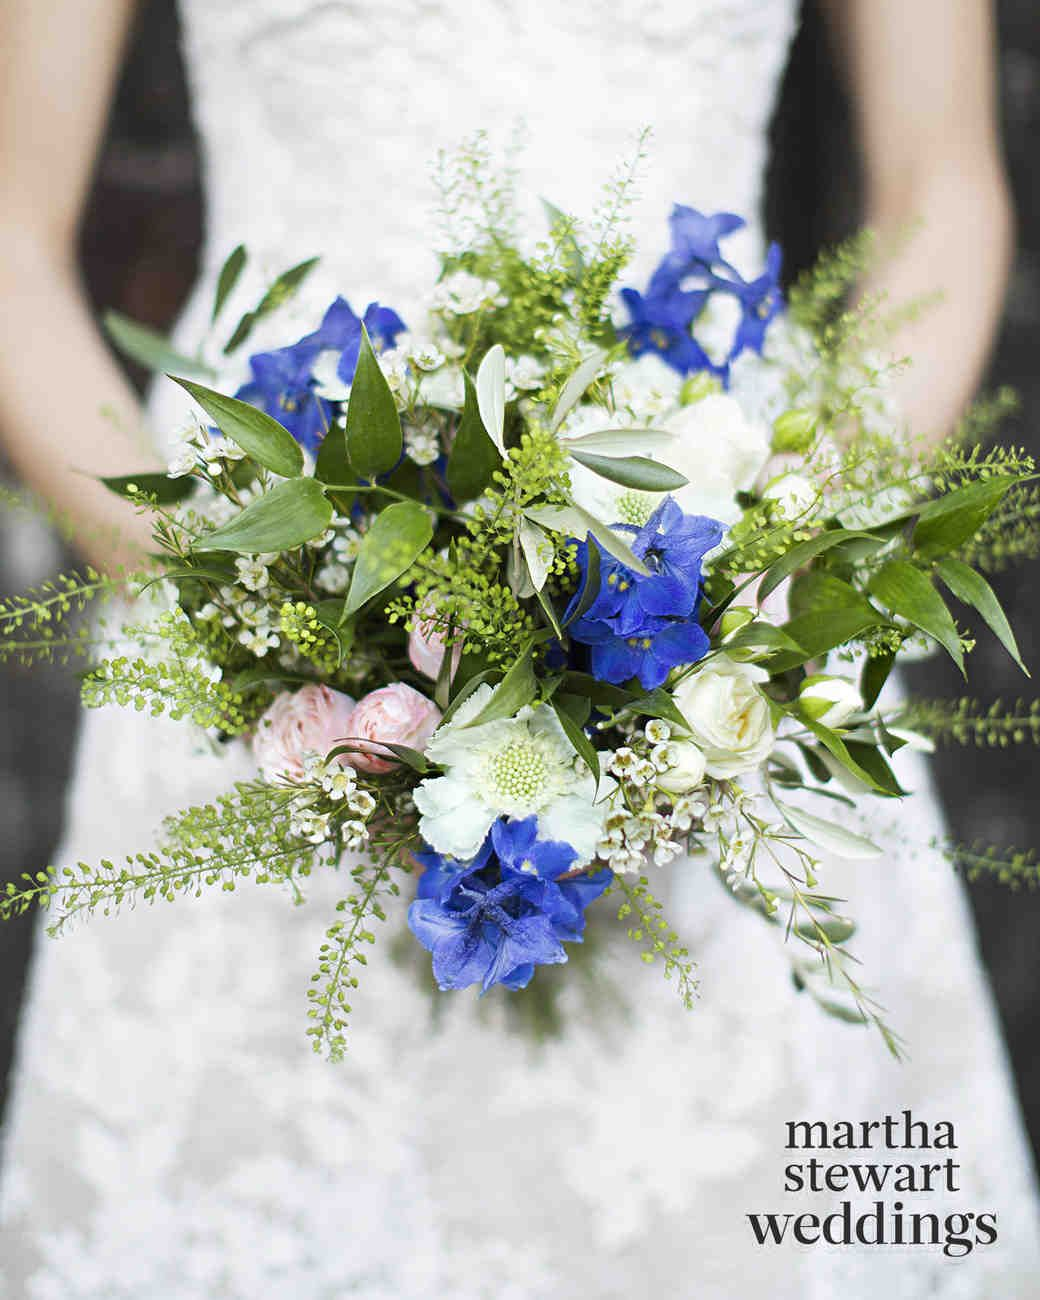 Wedding Bouquets Without Flowers: Exclusive: Louise Roe And Mackenzie Hunkin's Wedding